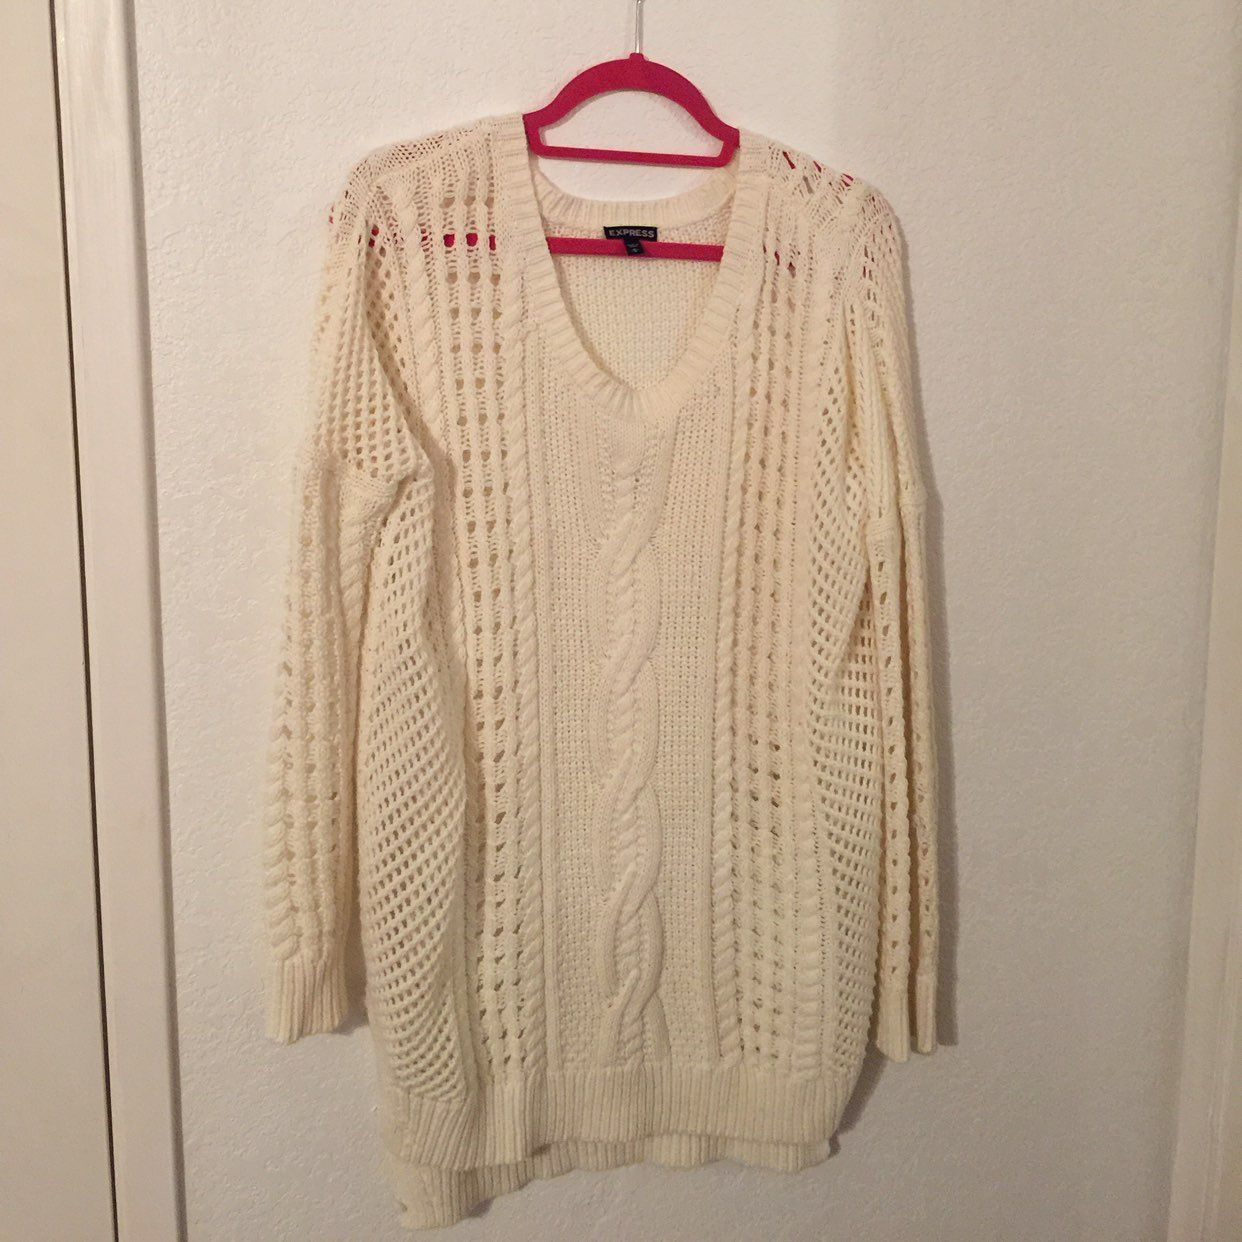 Express Cream Color Knit Sweater - Mercari: BUY & SELL THINGS YOU LOVE